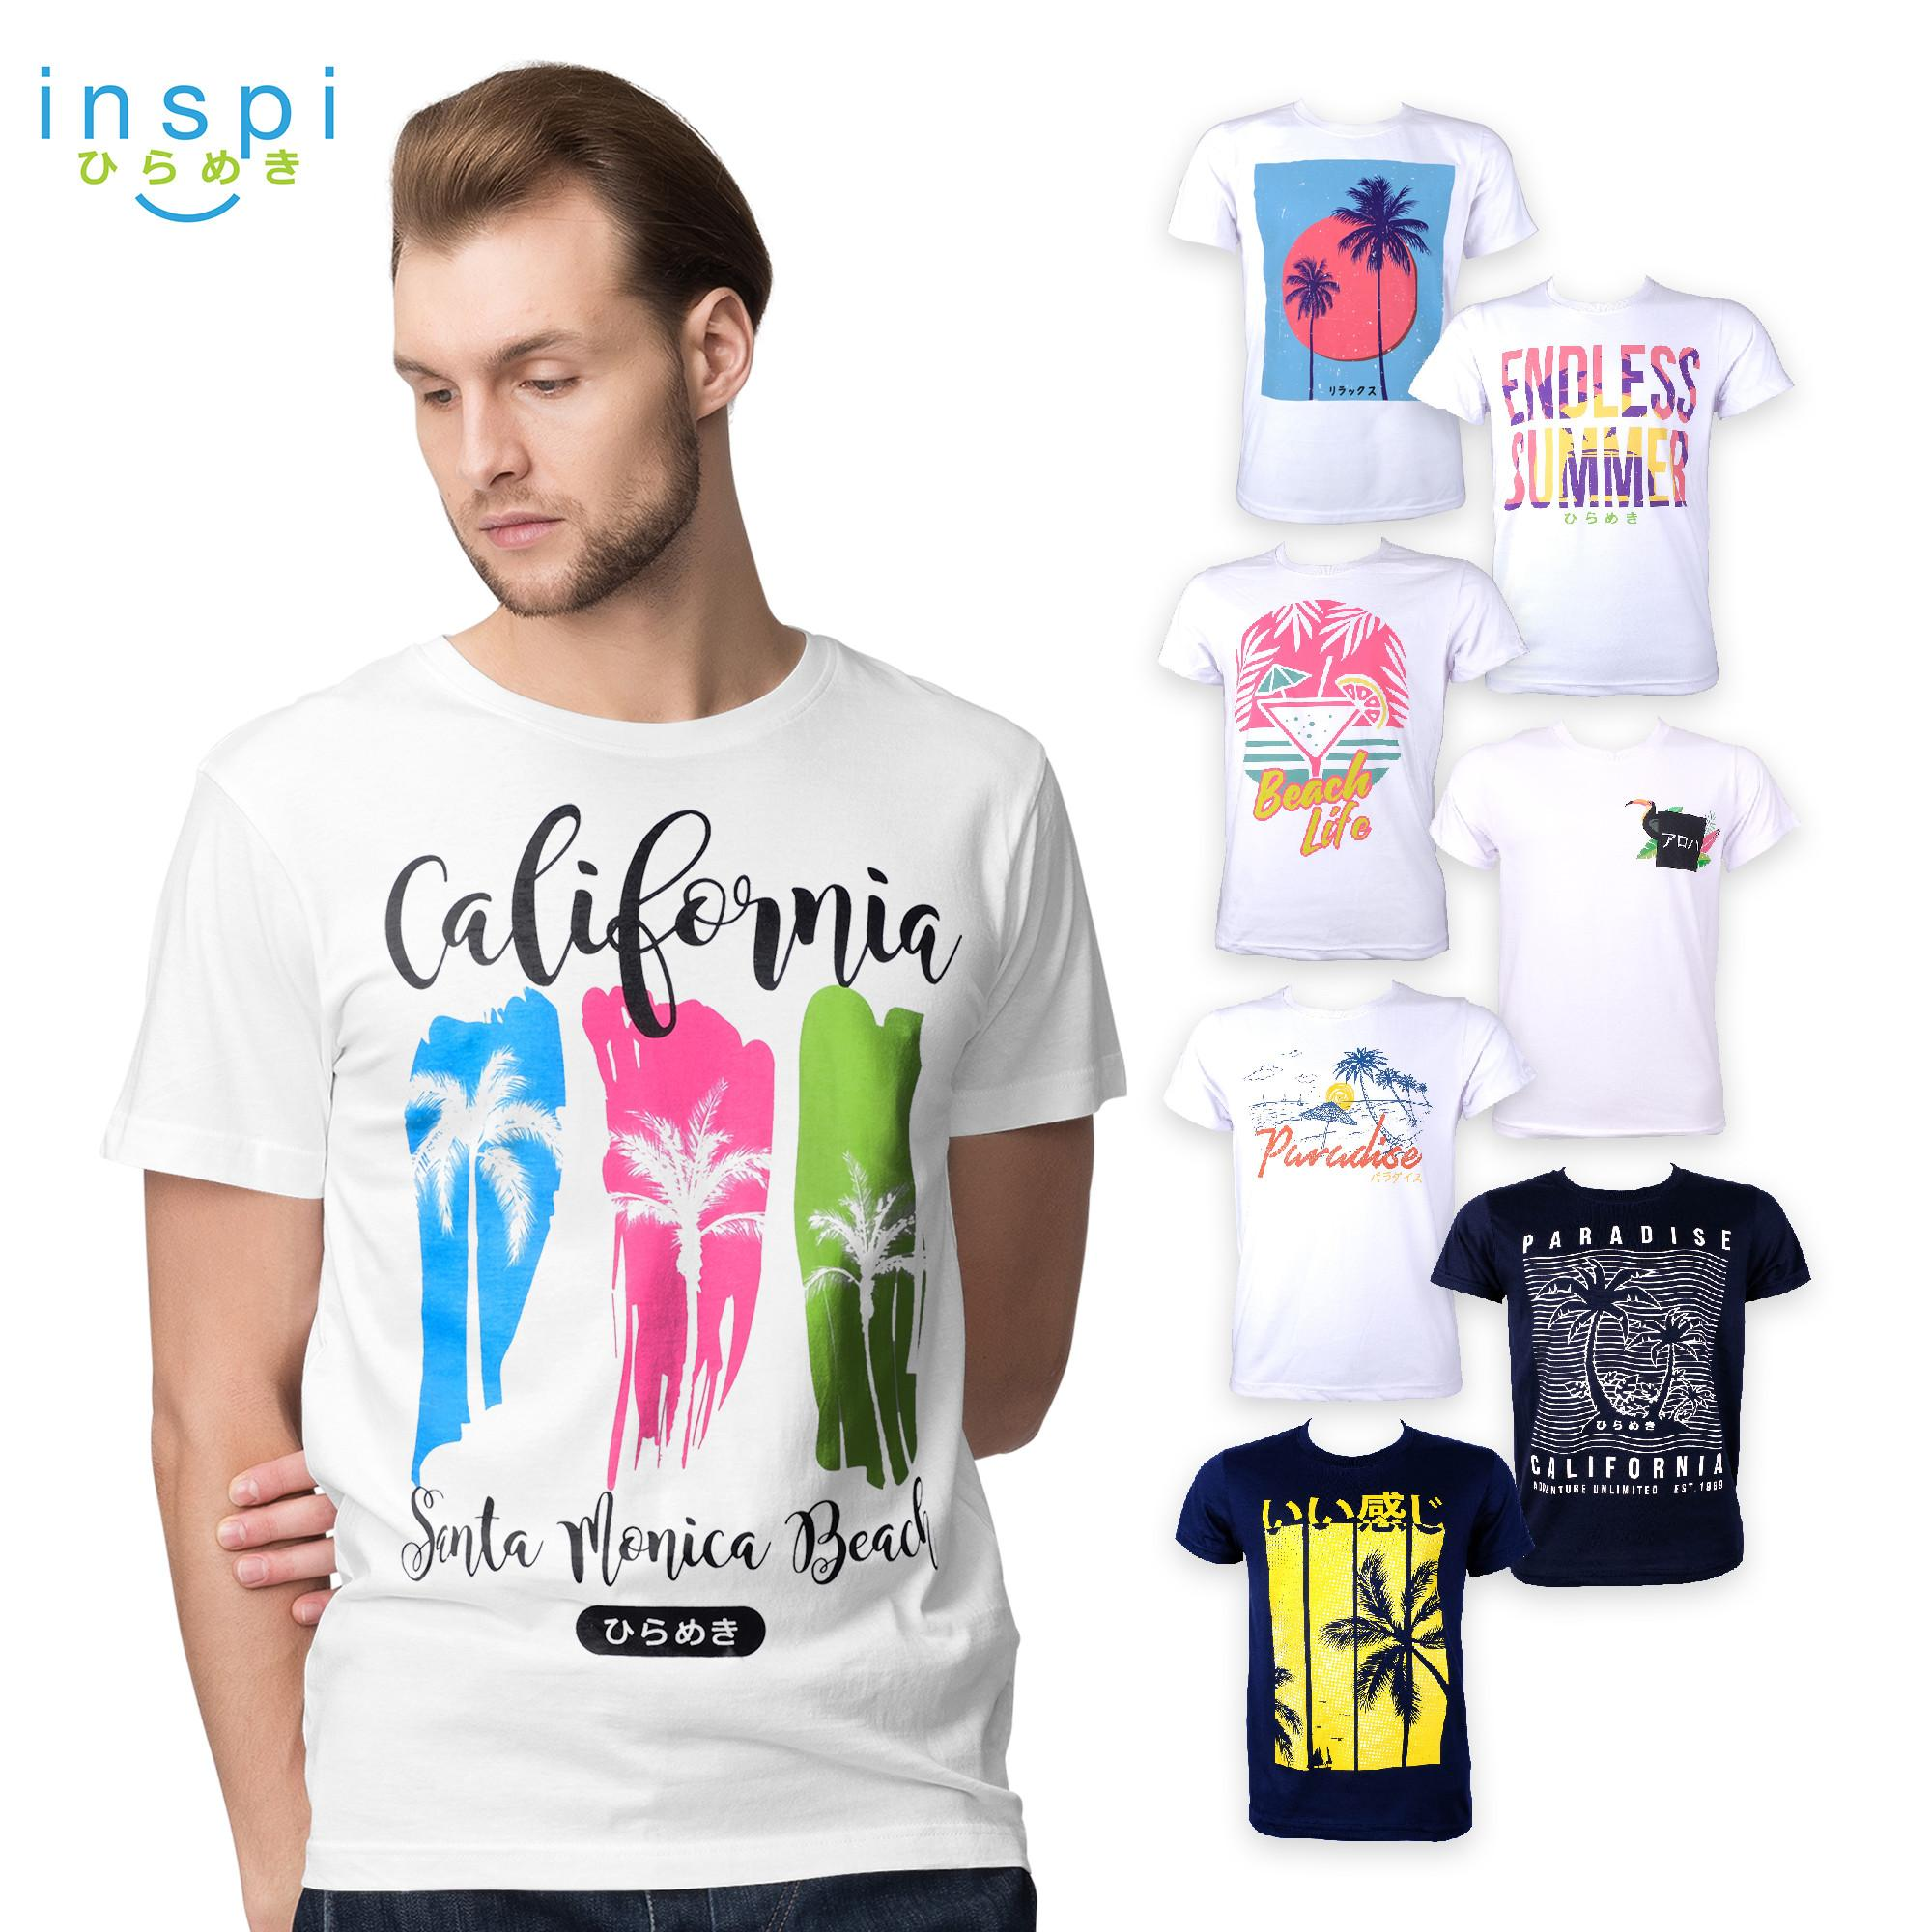 b58f6bd1f T-Shirt Clothing for Men for sale - Mens Shirt Clothing Online Deals &  Prices in Philippines | Lazada.com.ph